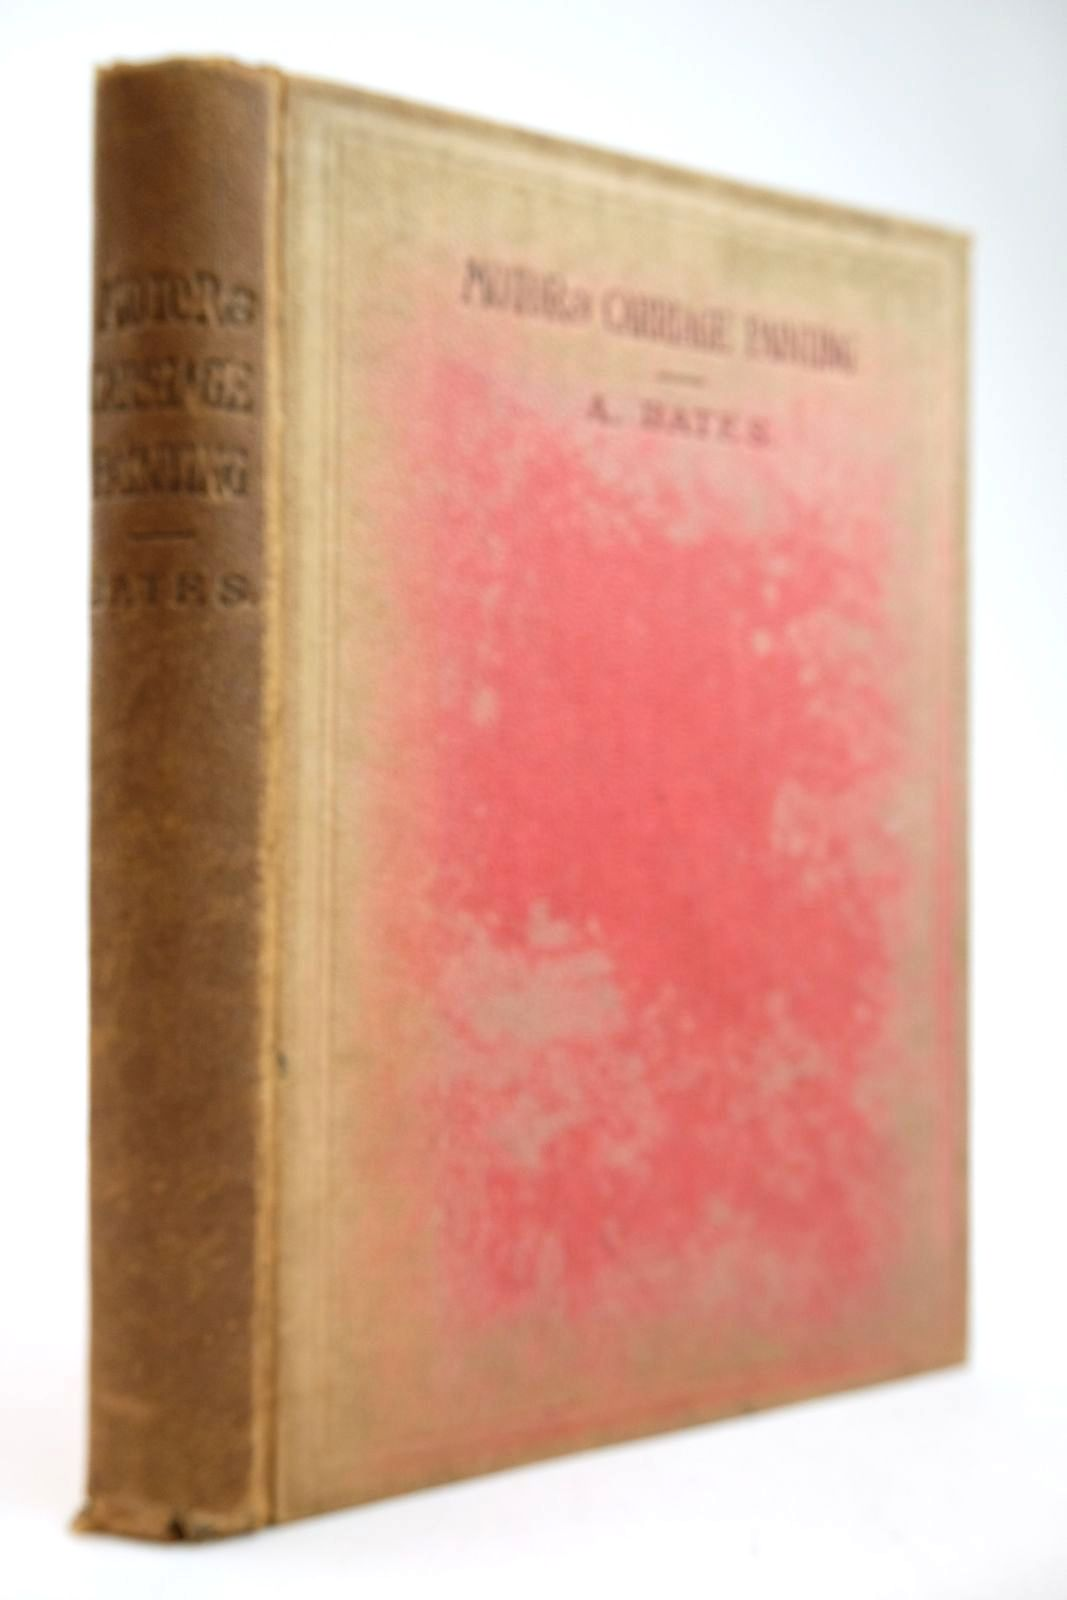 Photo of MOTOR AND CARRIAGE PAINTING: A PRACTICAL MANUAL written by Bates, A. published by The Trade Papers Publishing Co. Ltd. (STOCK CODE: 2133367)  for sale by Stella & Rose's Books